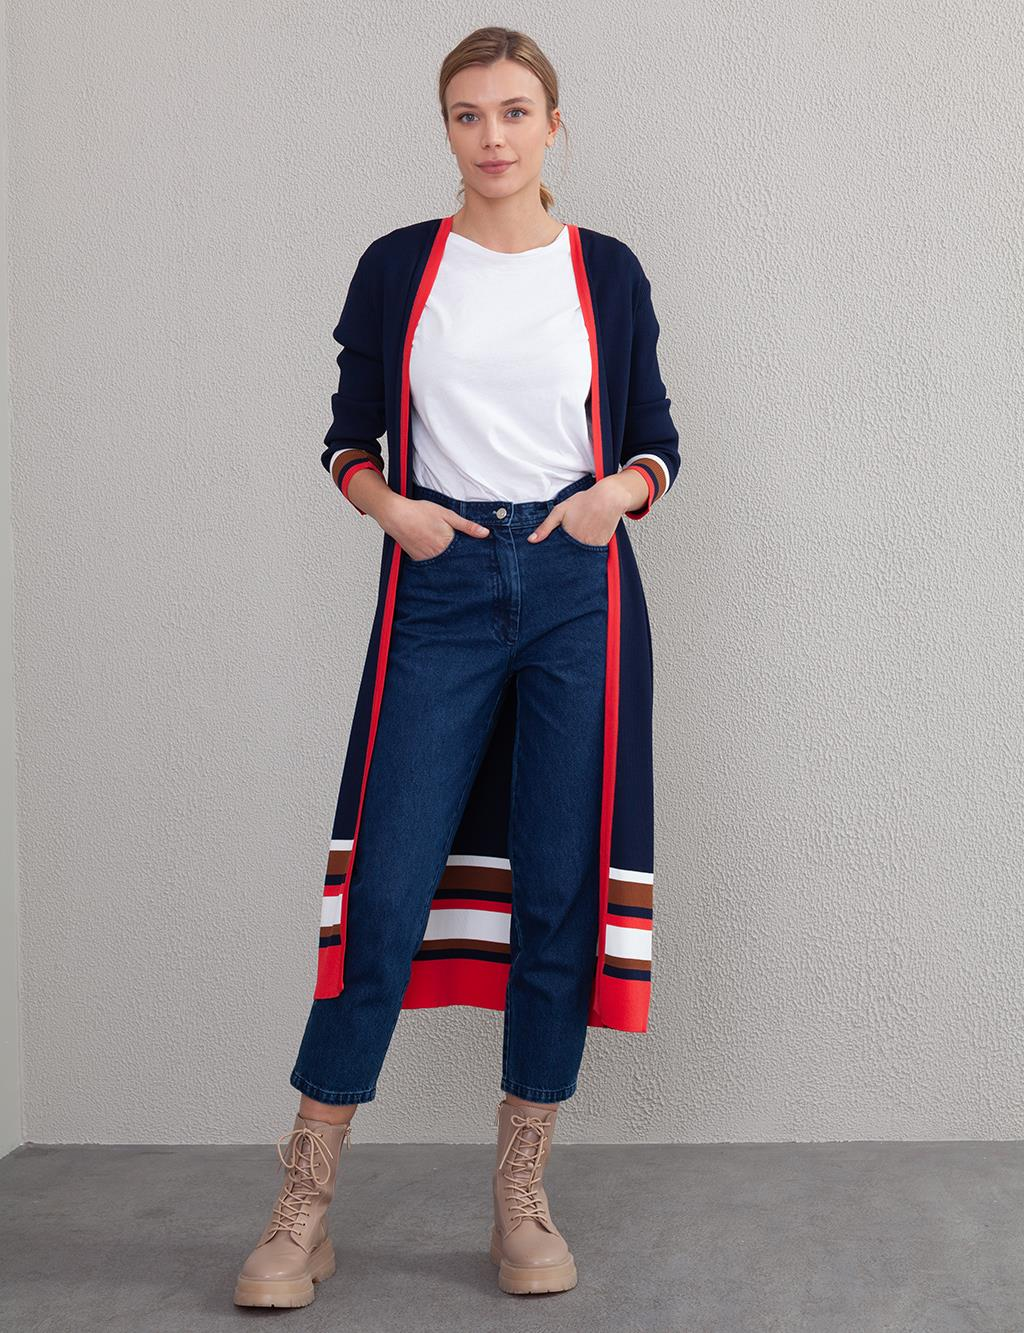 Striped Knit Cardigan A7 TRK01 Navy